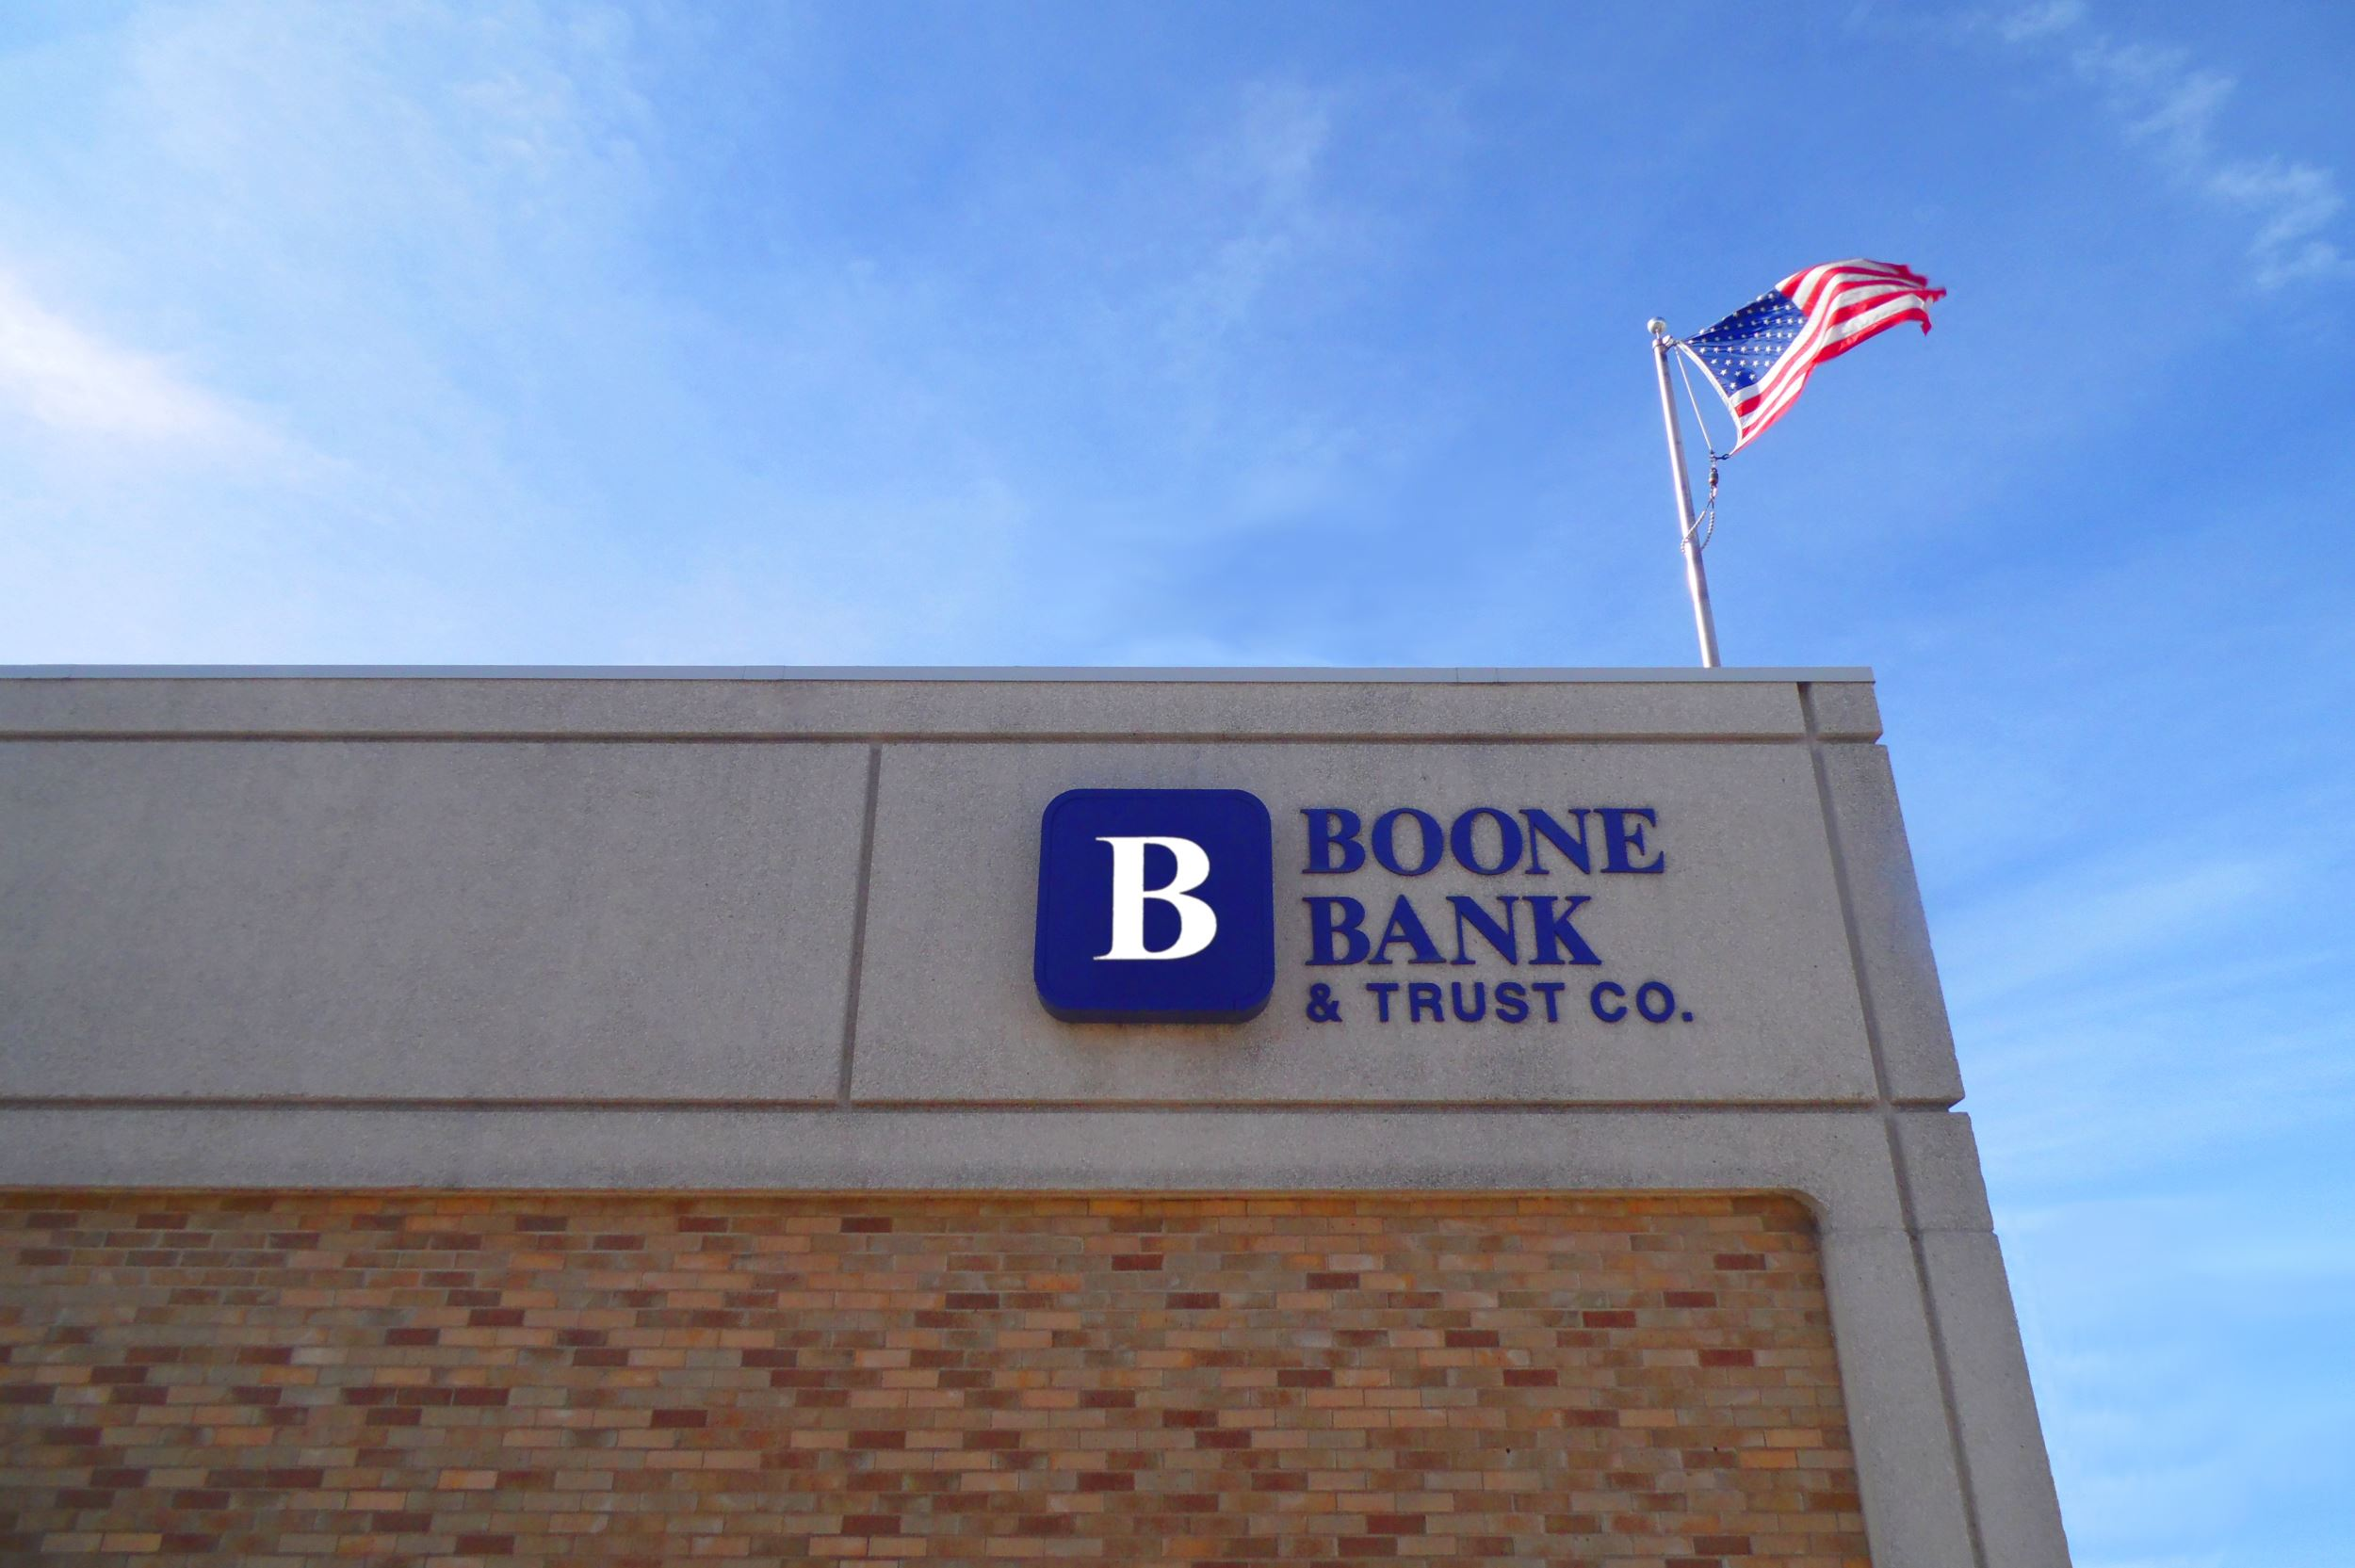 Boone Bank Trust Co